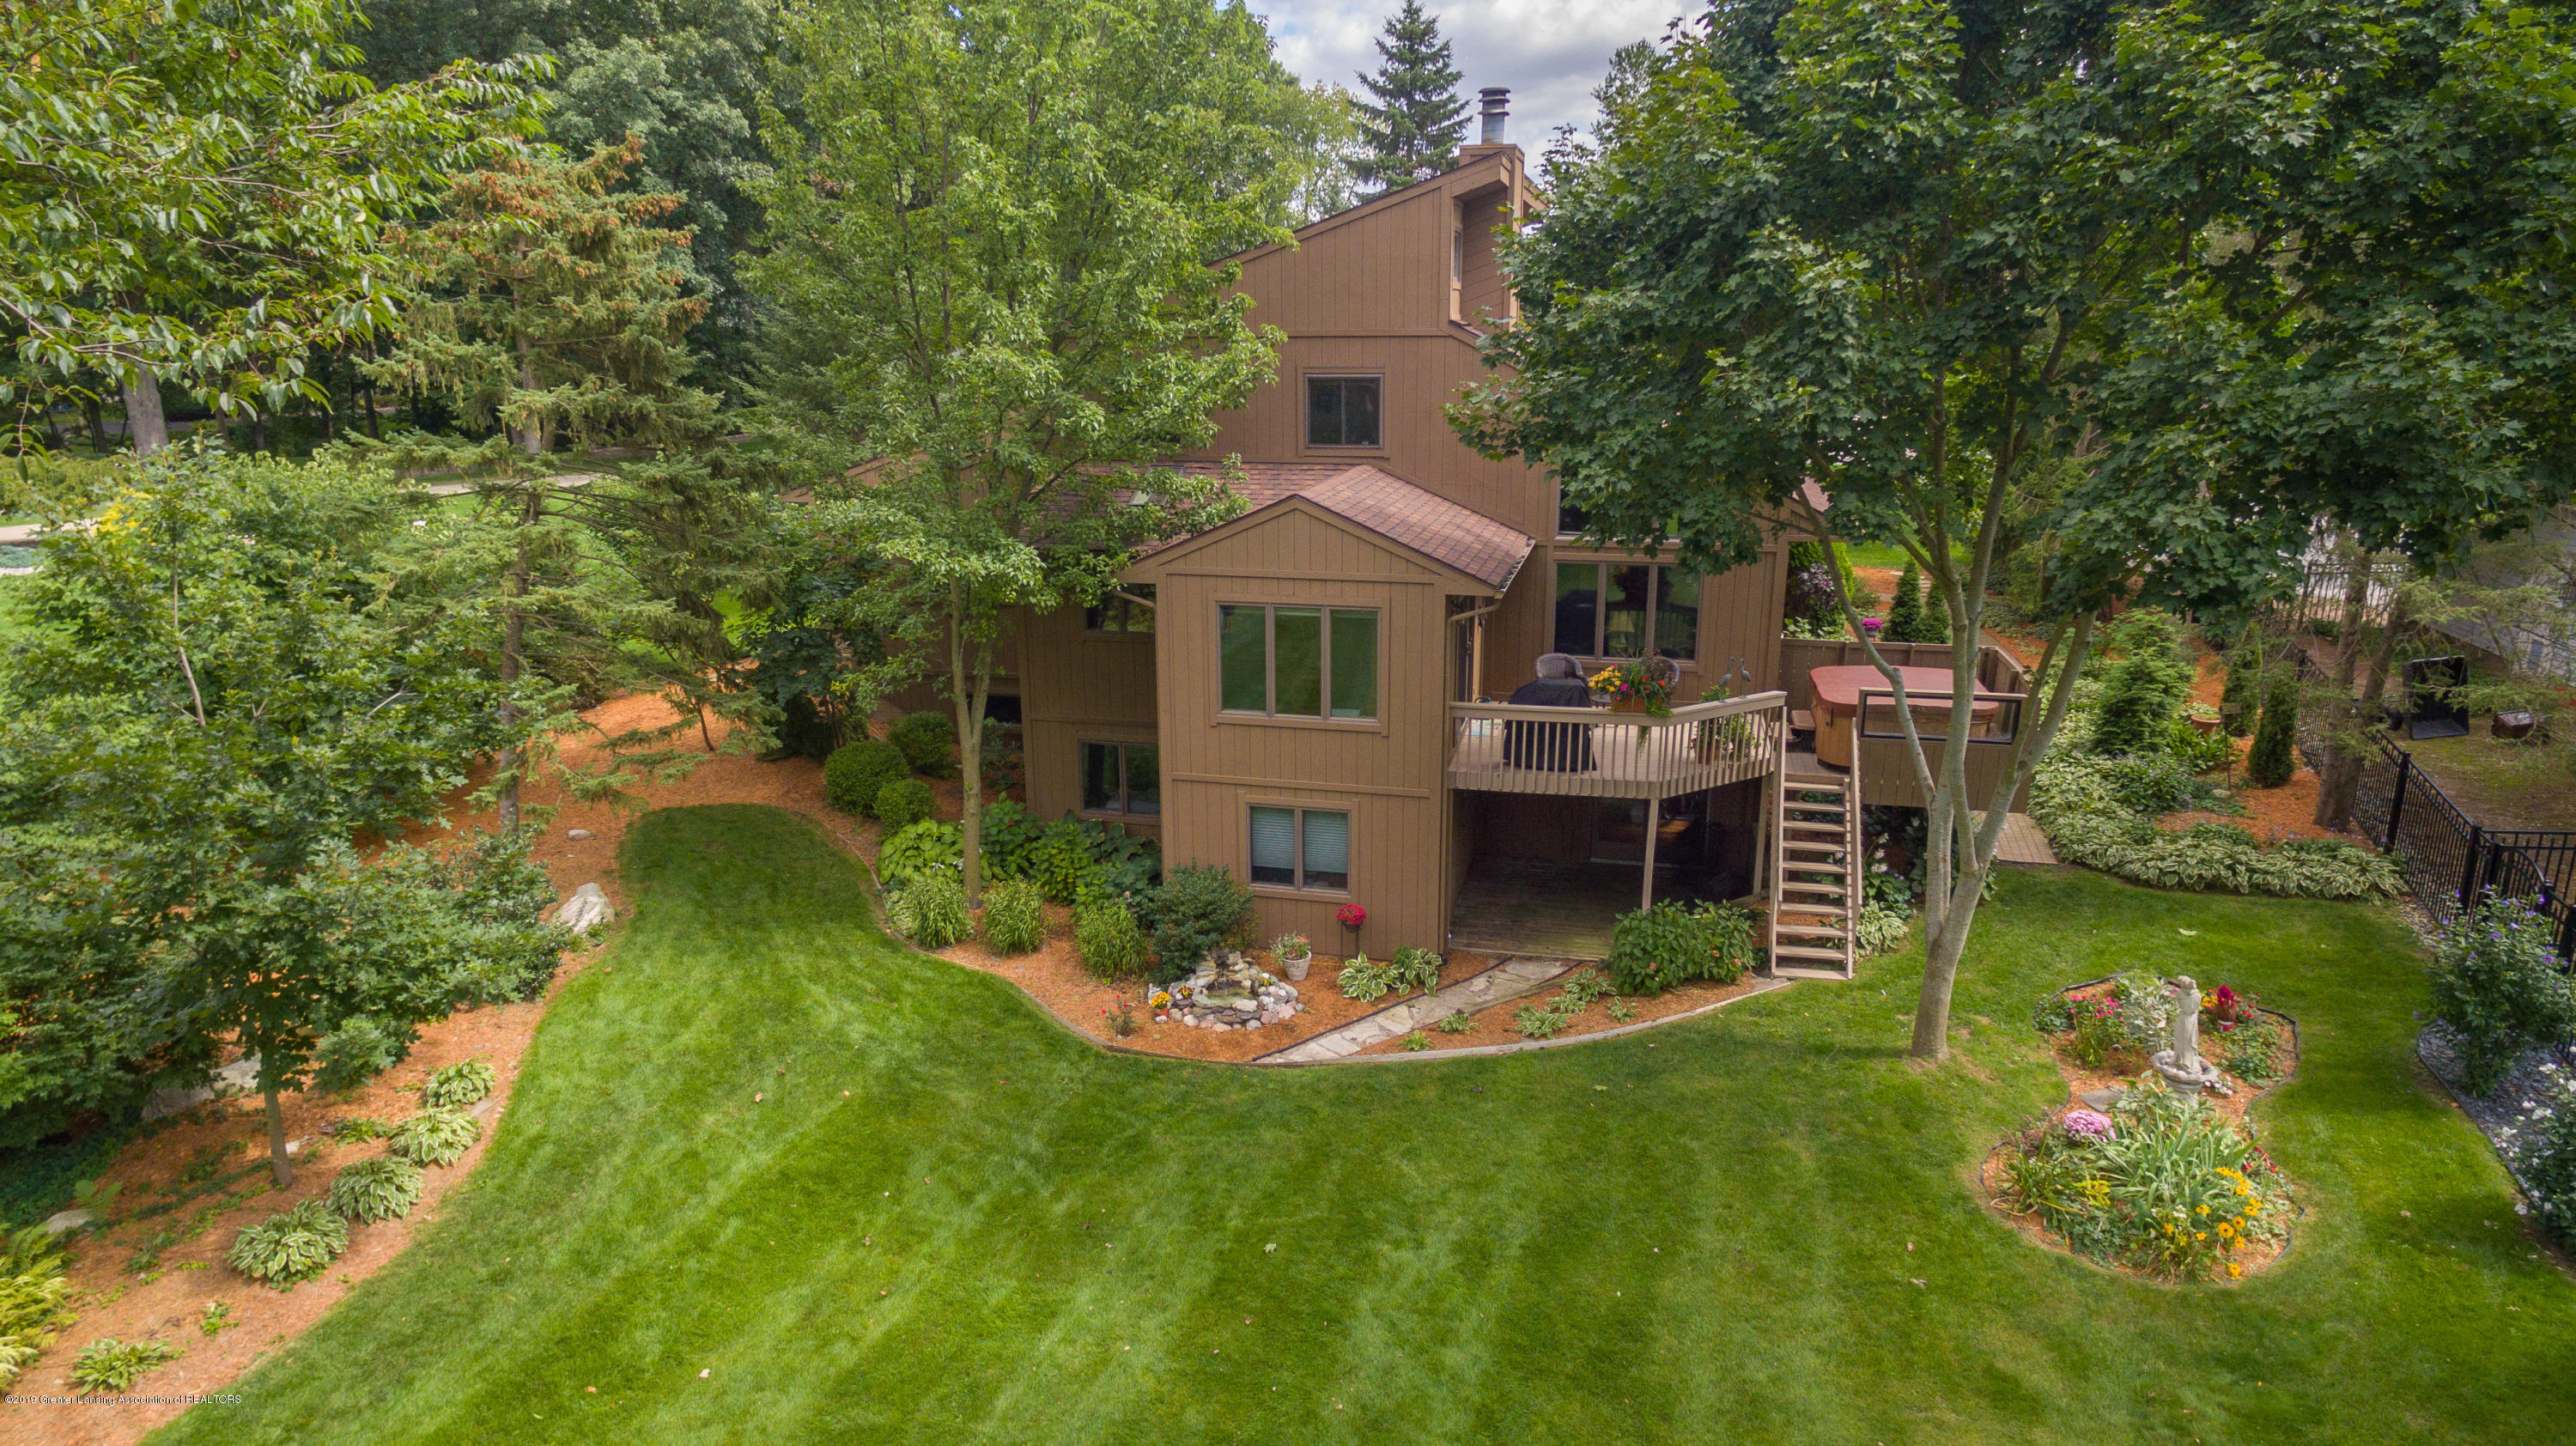 604 E Geneva Dr - Aerial View of Back Yard/ House - 53